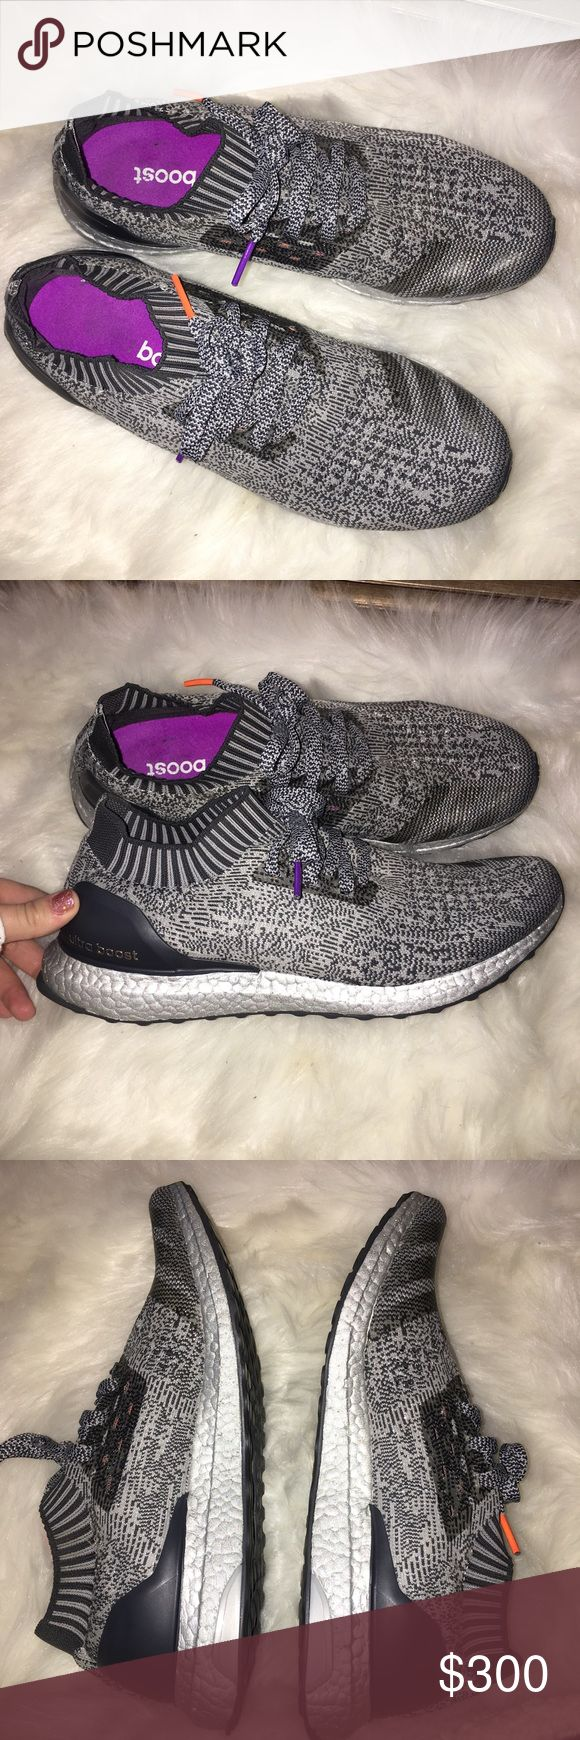 """RARE Adidas Ultra Boost """"Silver Boost"""" Uncaged Perfect condition. NWOT. These shoes dropped 2/15/17 and are a rare edition of the """"silver Boost"""" line of ultra boosts. adidas Shoes Sneakers"""